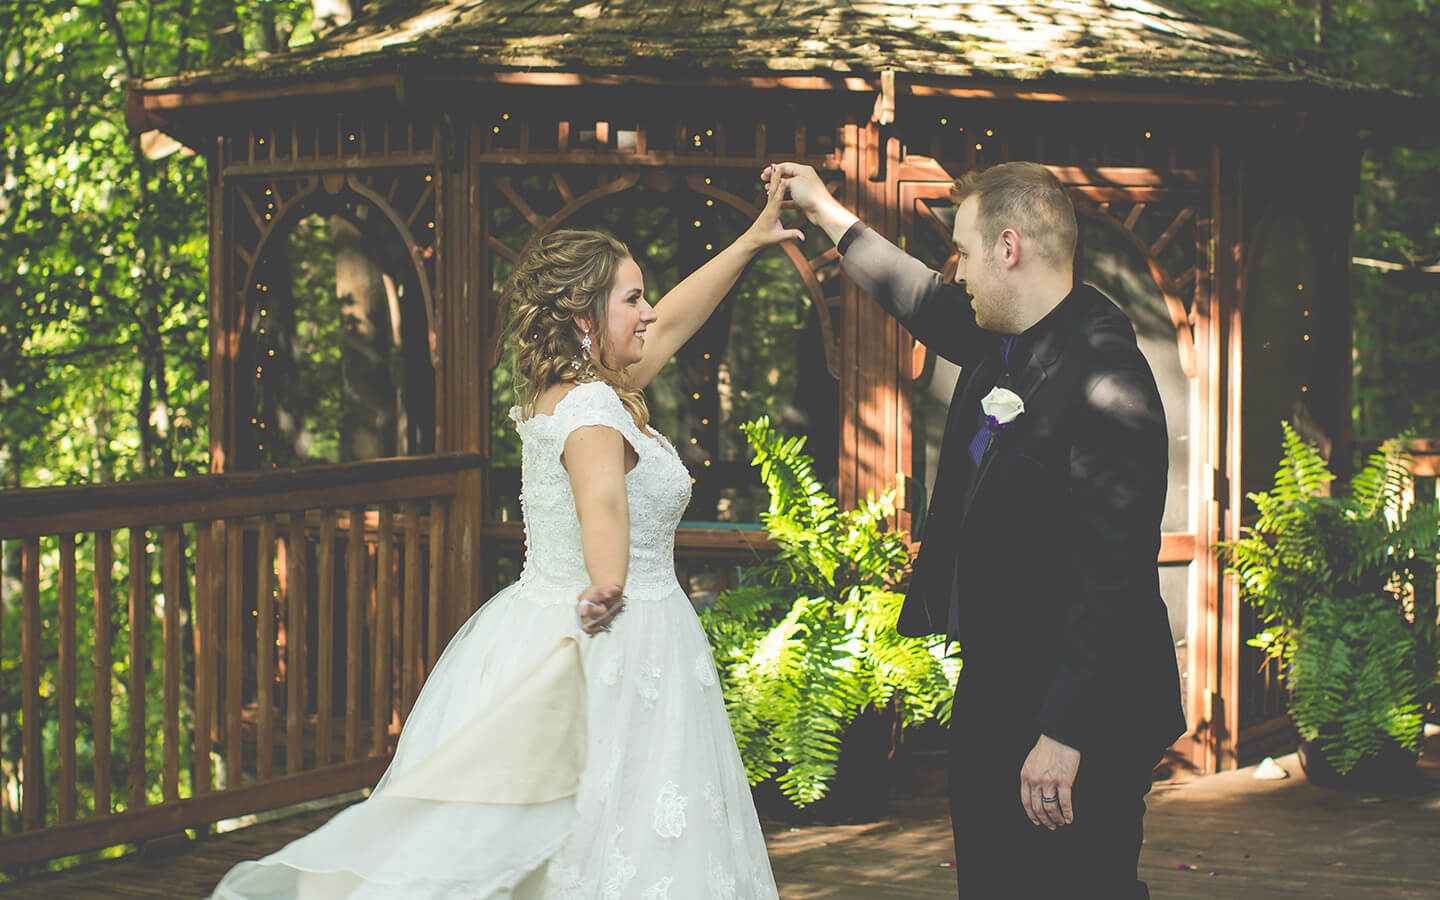 Bride and groom dancing in front of a gazebo at our destination wedding location in Michigan